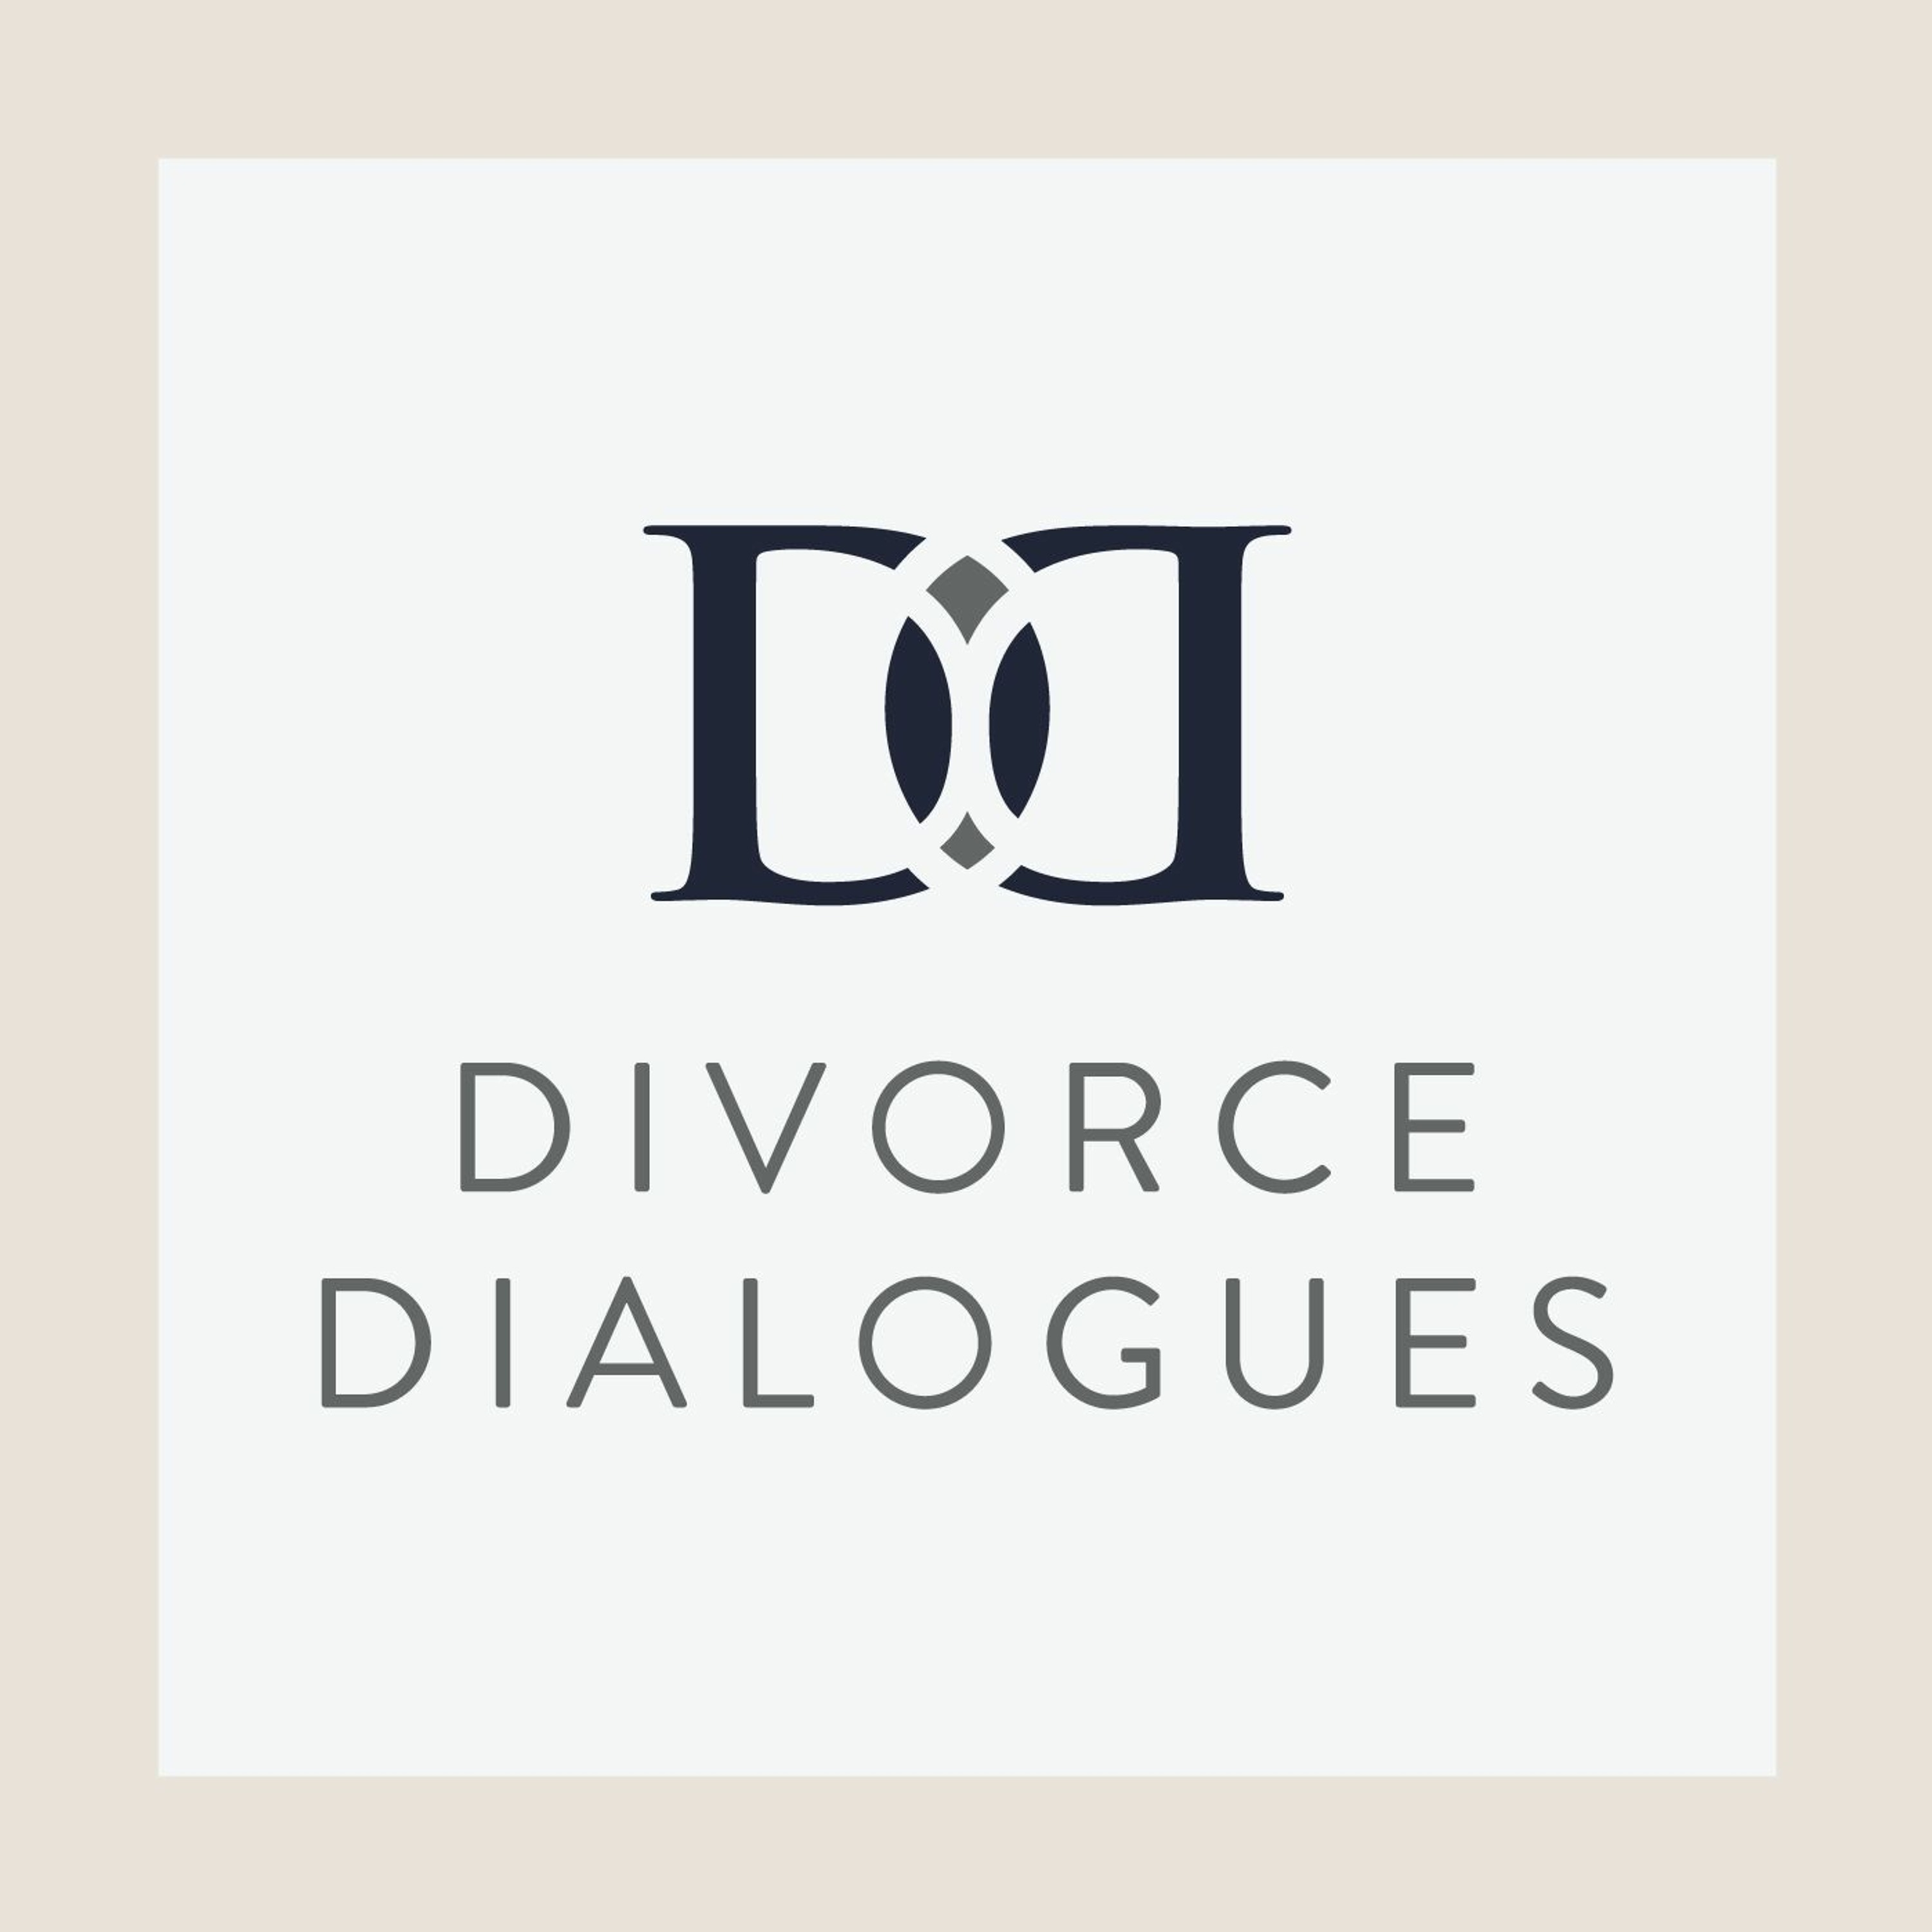 Divorce Dialogues - The Child Specialist: Giving Children a Voice in the Divorce Process with Dr. Lauren Behrman